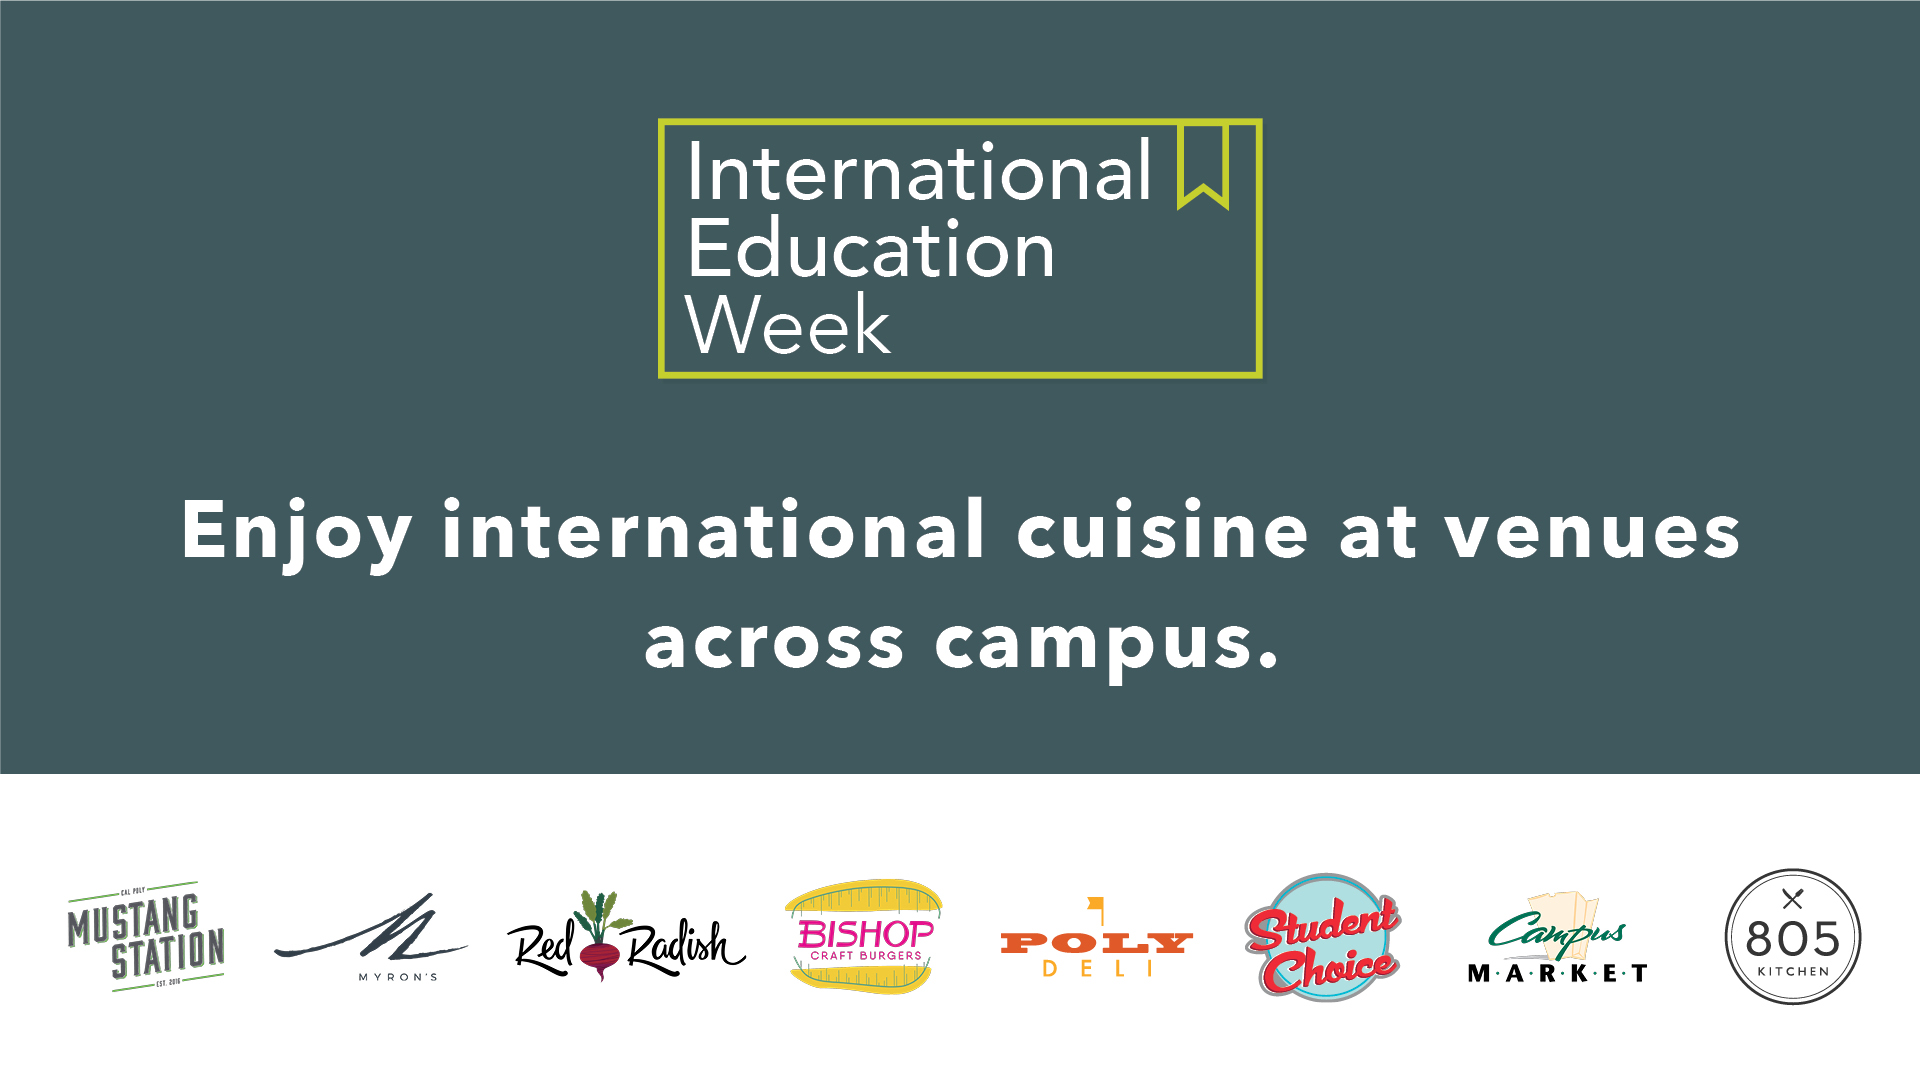 Enjoy international cuisine at venues across campus, with icons of different campus restaurants.